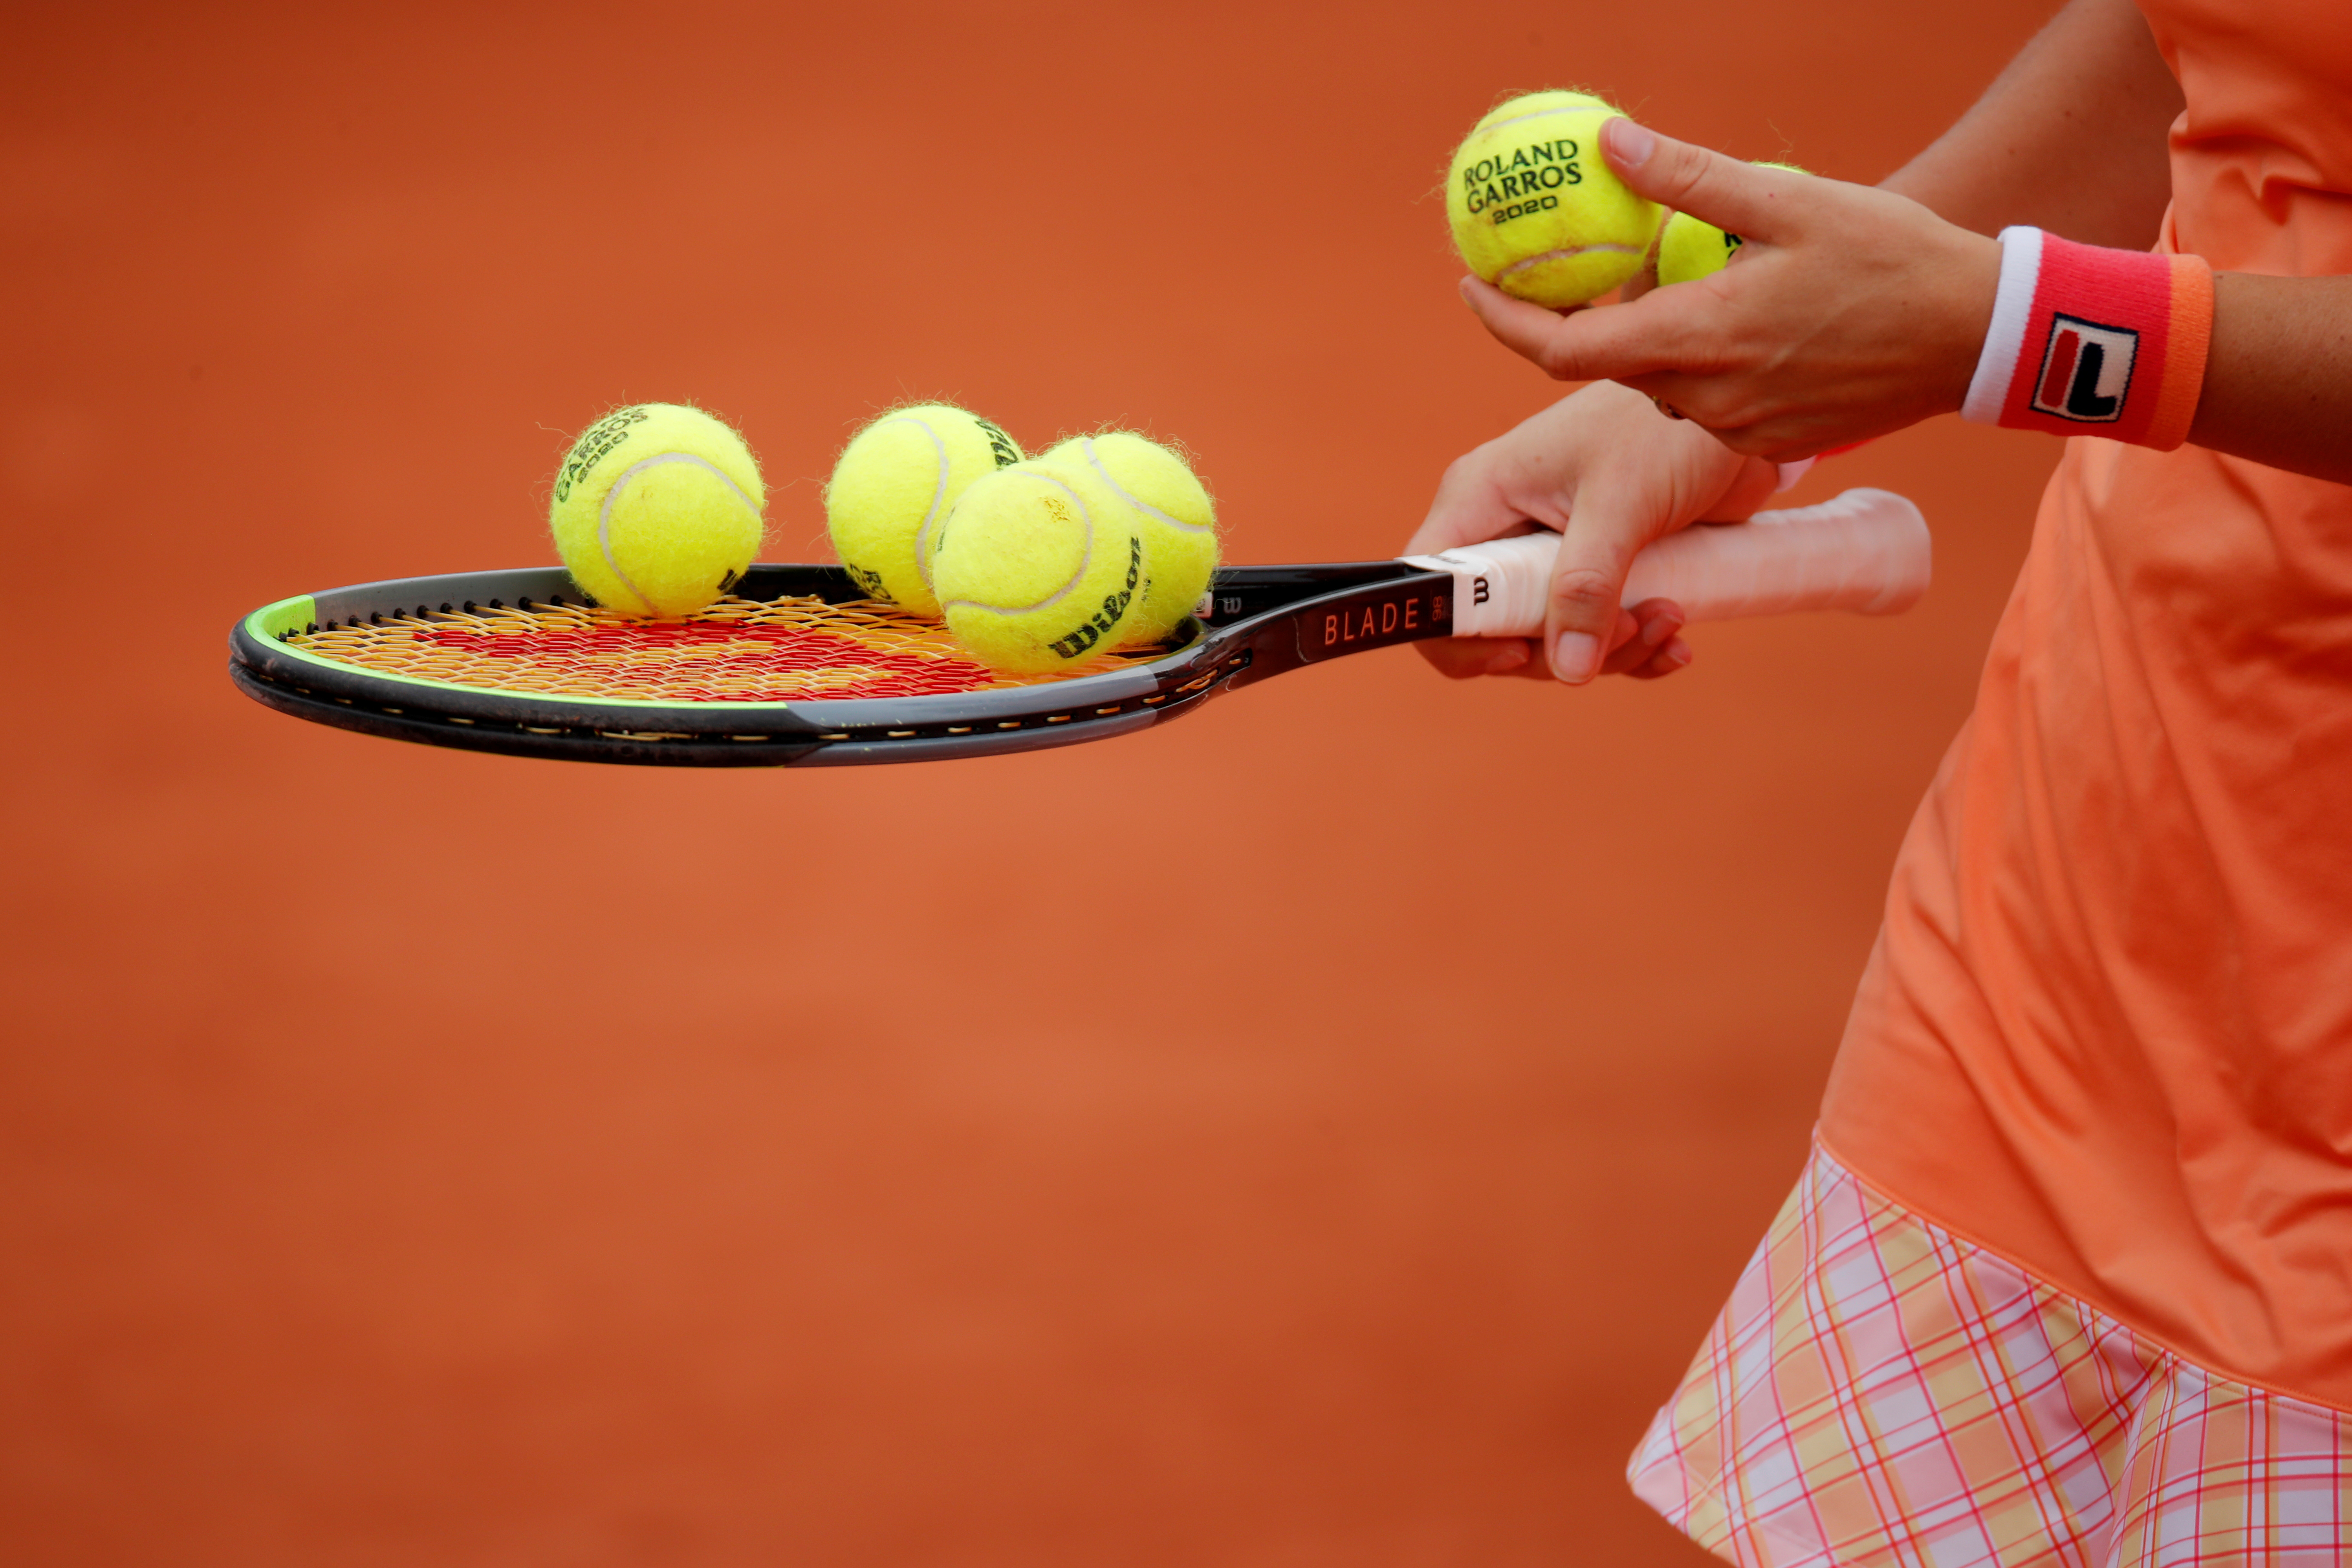 Prosecutors investigating match-fixing allegations at French Open